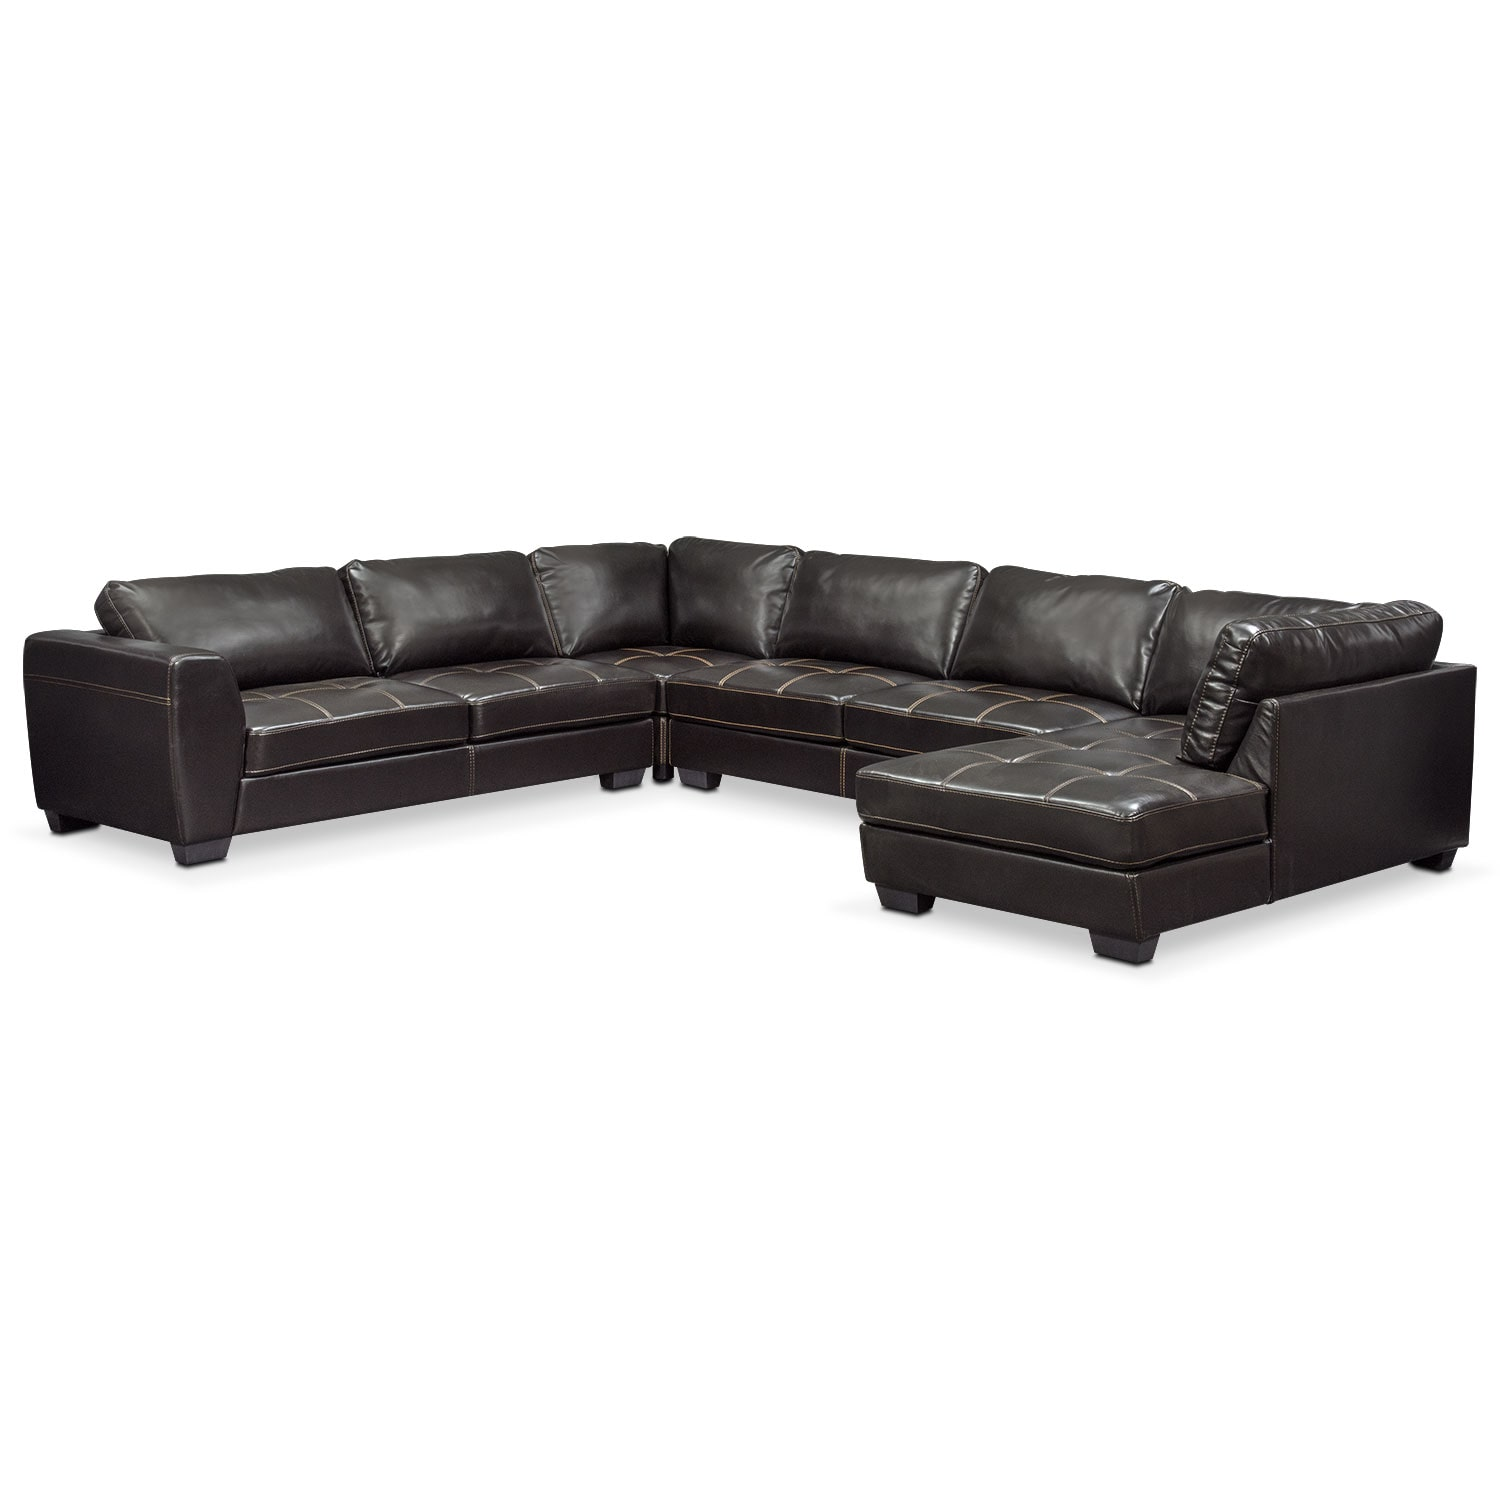 Santana 4-Piece Sectional with Right-Facing Chaise - Black